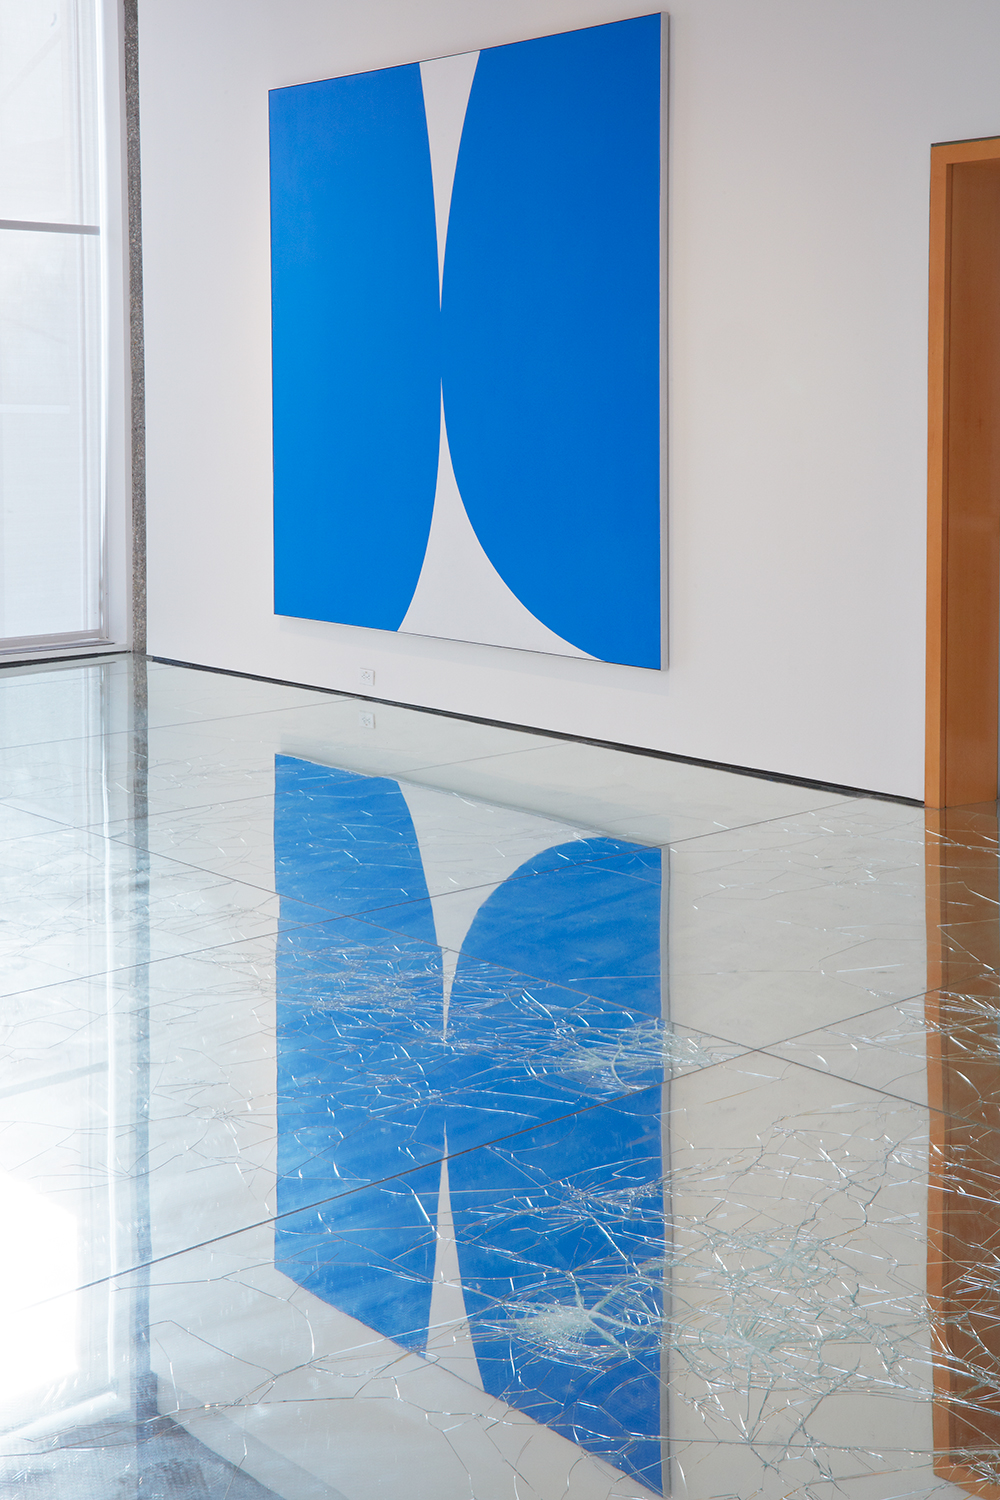 On the Matter of Abstraction (figs. A & B): Parallel Exhibitions of Post-War Non-Figurative Art from the Collection , Rose Art Museum, Brandeis University, Waltham, MA, 2013—in collaboration with Rose Art Museum Director Christopher Bedford. Rose Art Museum Permanent Collection.    Ellsworth Kelly